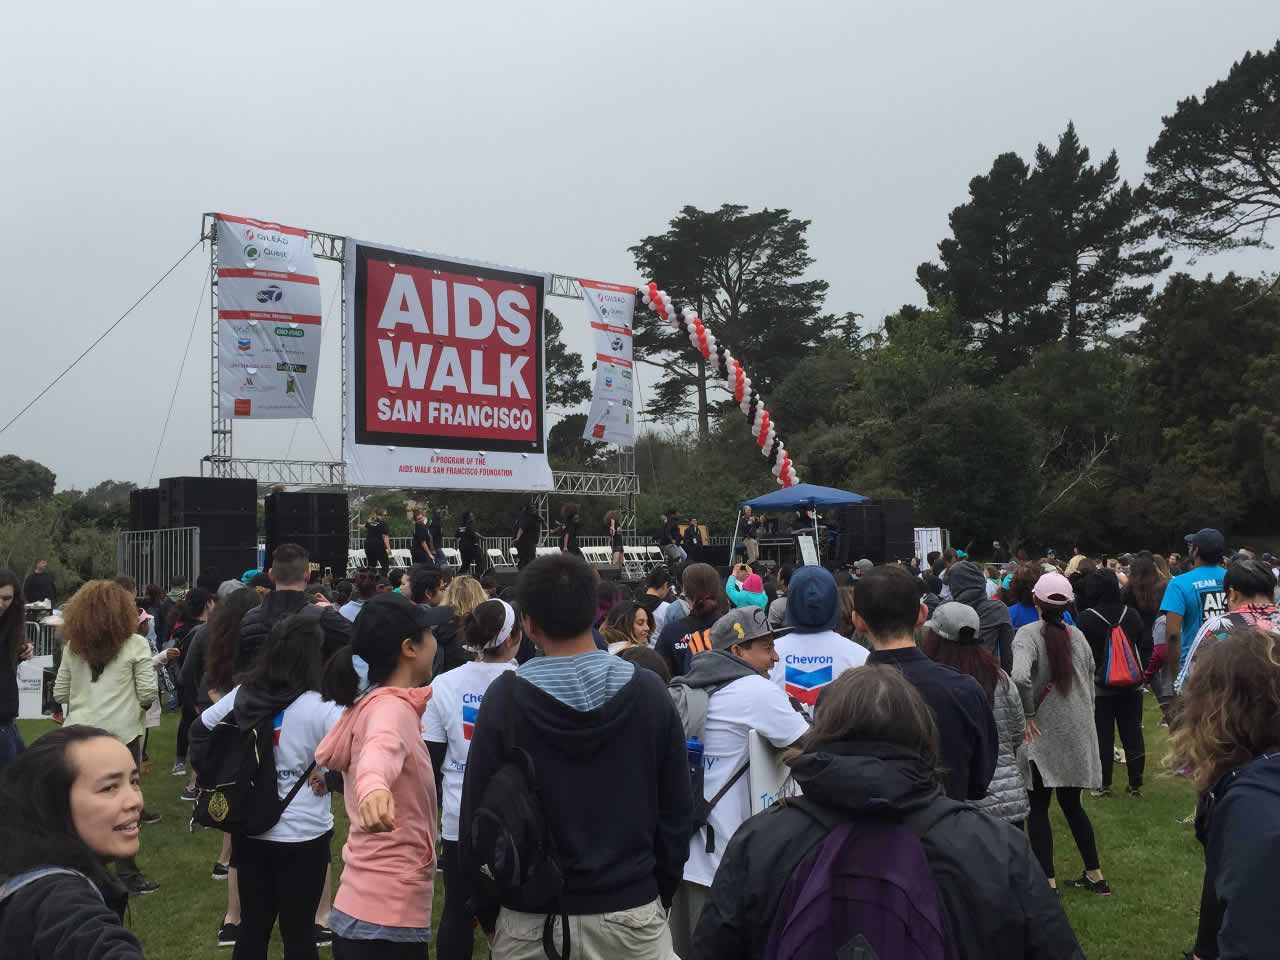 <div class='meta'><div class='origin-logo' data-origin='none'></div><span class='caption-text' data-credit='KGO-TV'>AIDS Walk San Francisco on Sunday, July 17, 2016.</span></div>